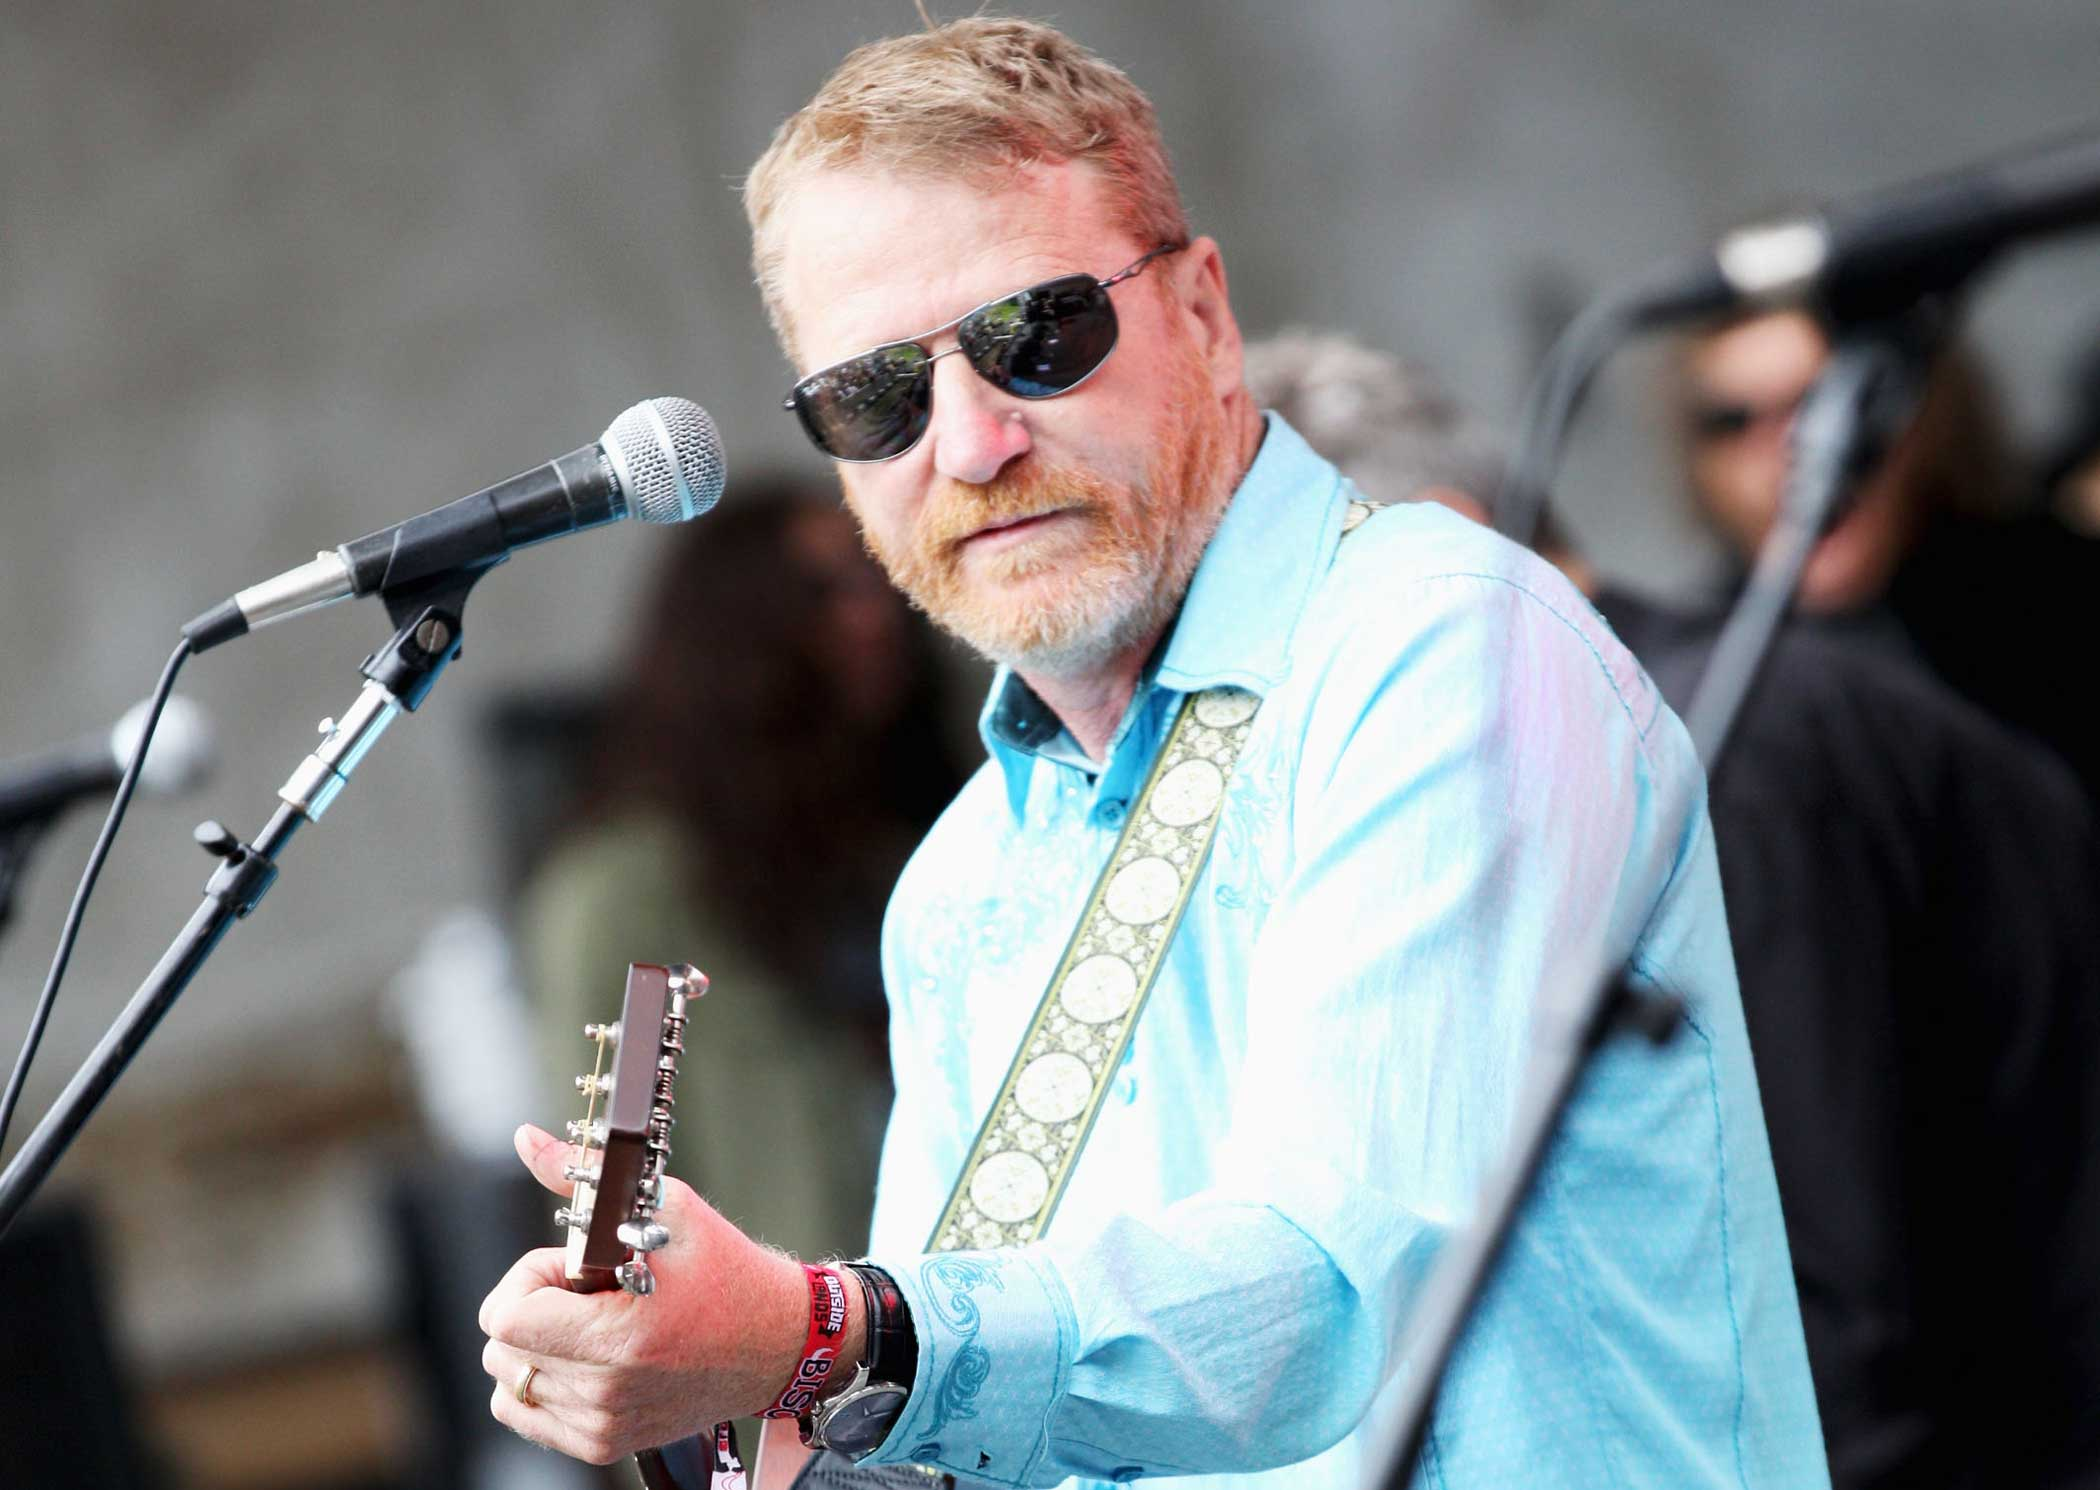 Musician David Lowery of Camper von Beethoven performs at the Sutro Stage during Day 3 of the 2013 Outside Lands Music And Arts Festival at Golden Gate Park on Aug. 11, 2013 in San Francisco.